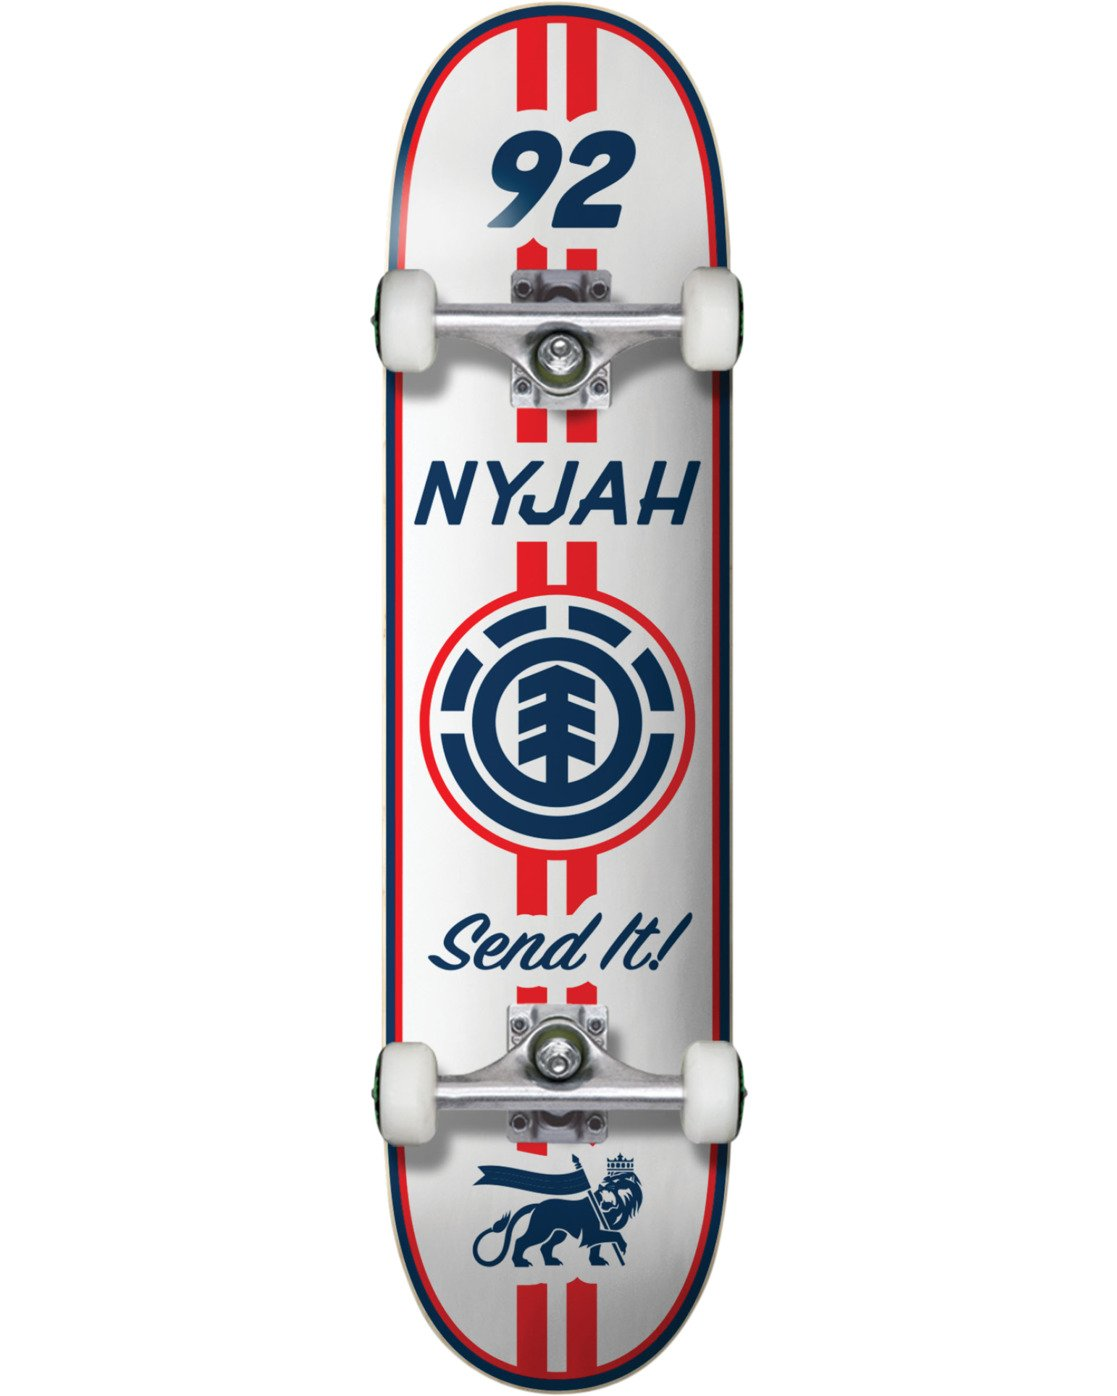 2 Nyjah Racing Complete Skateboard  COPR4NHR Element